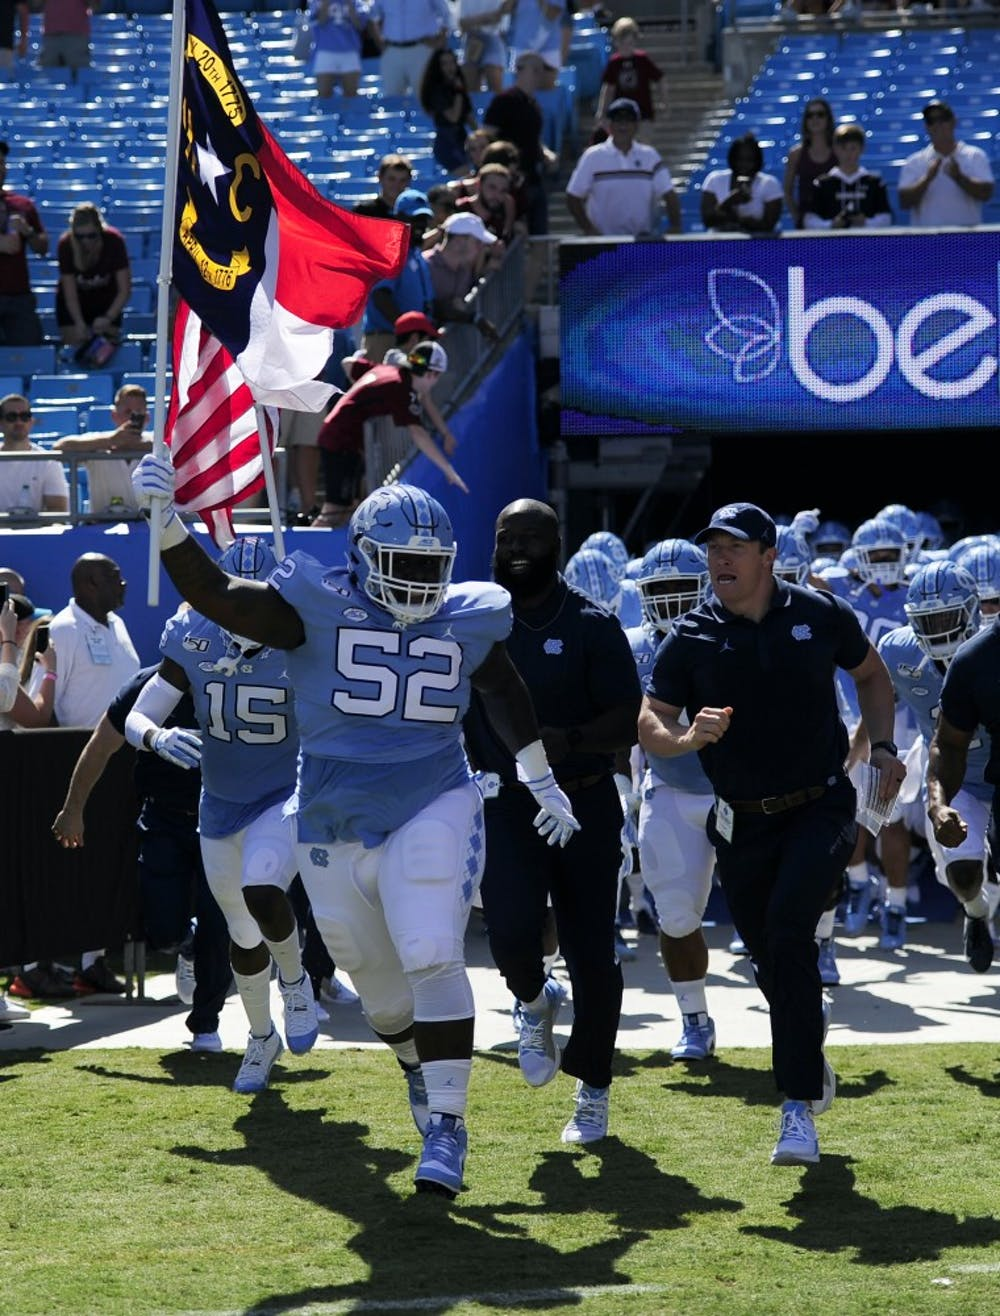 Riding high after beating South Carolina, UNC football is ready to take on Miami